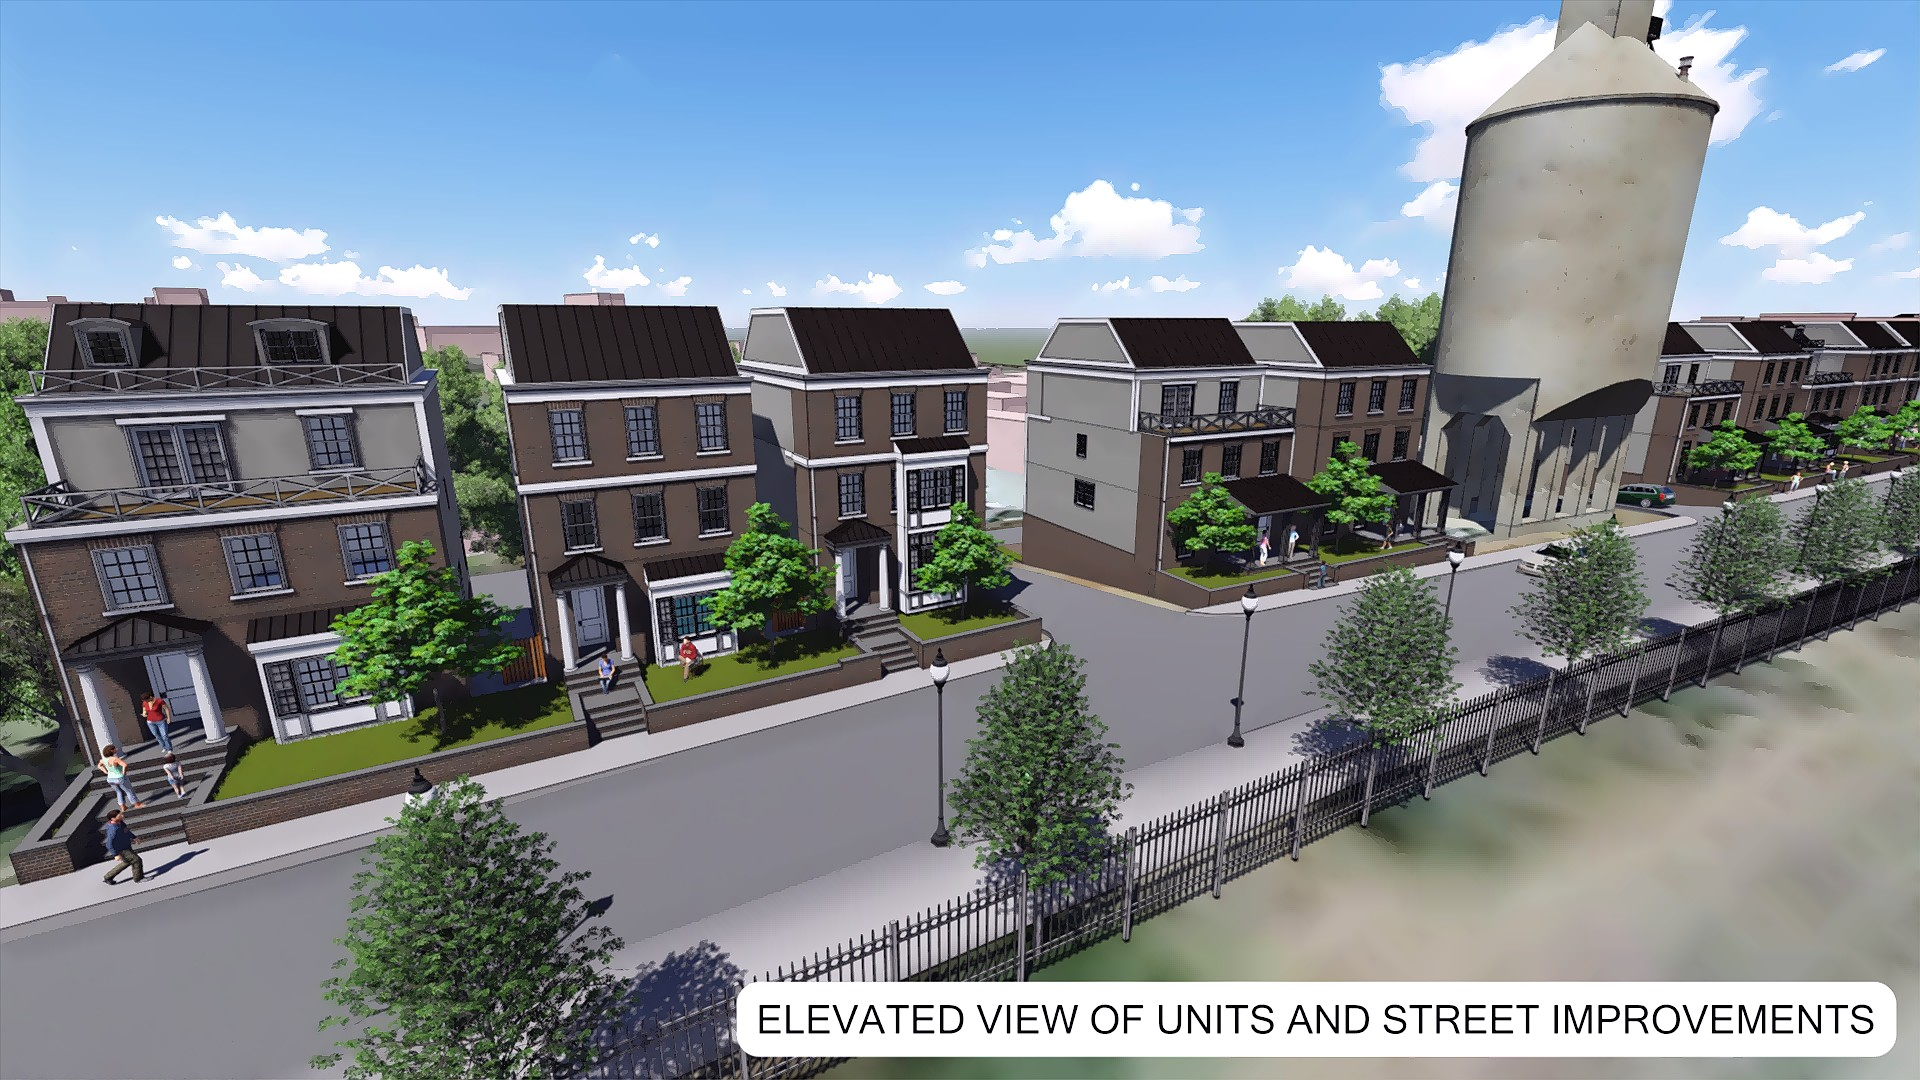 Elevated View of Units